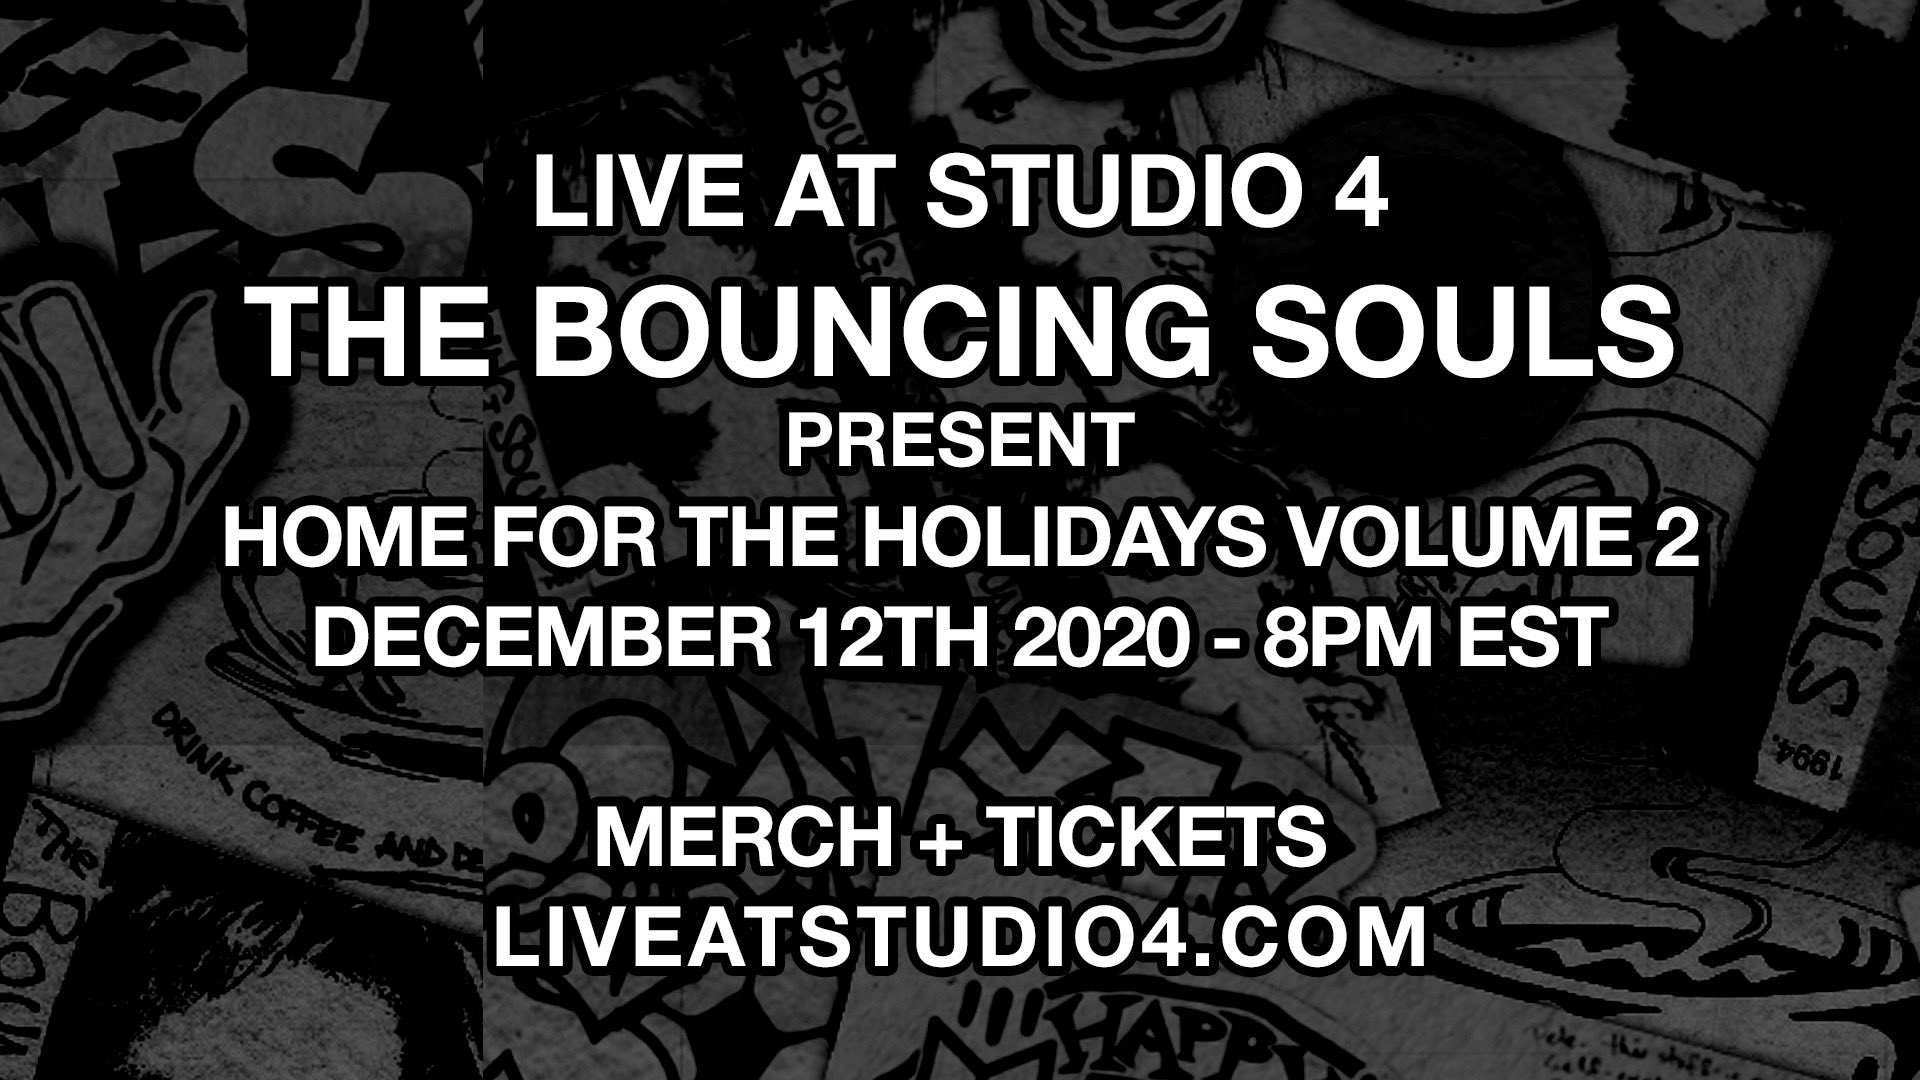 Live at Studio 4 + The Bouncing Souls Present: Home for the Holidays Volume 2. December 12th 2020 - 8PM EST. Merch + Tickets at liveatstudio4.com